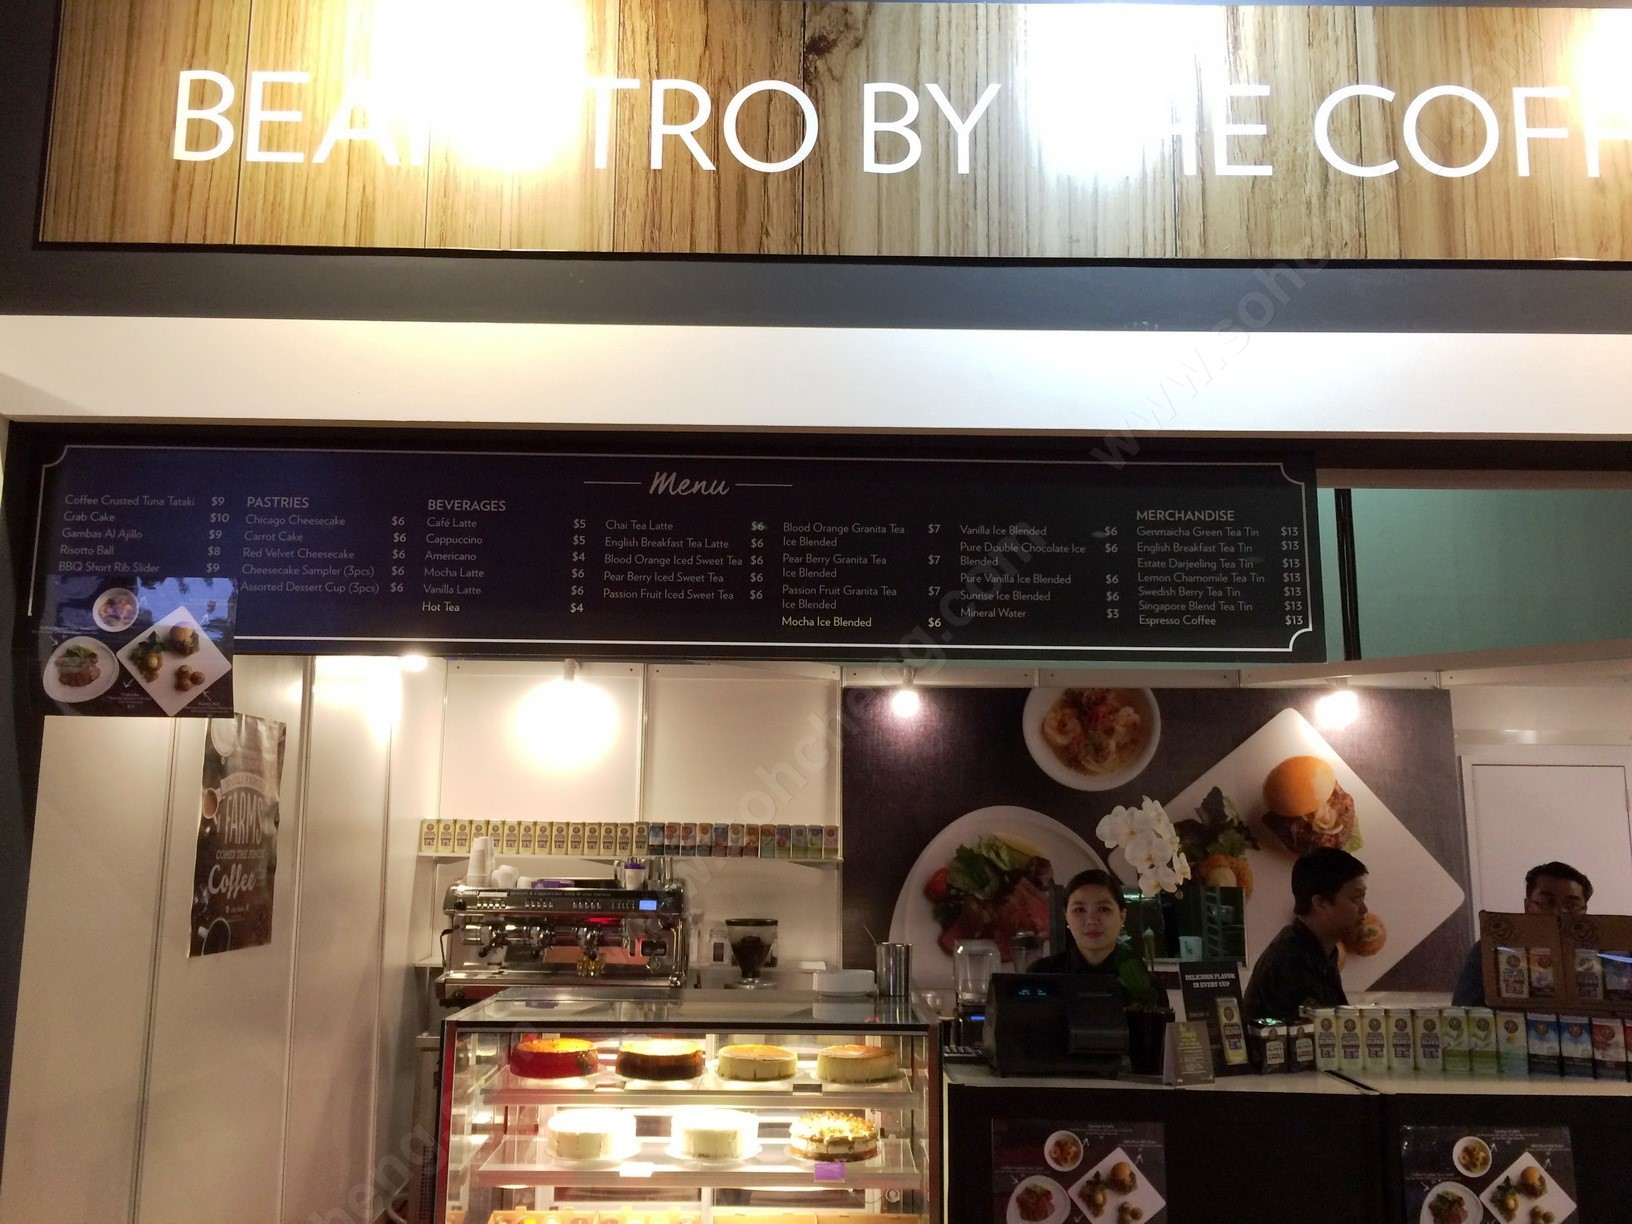 3._Beanstro_By_the_Coffee_Bean_Menu